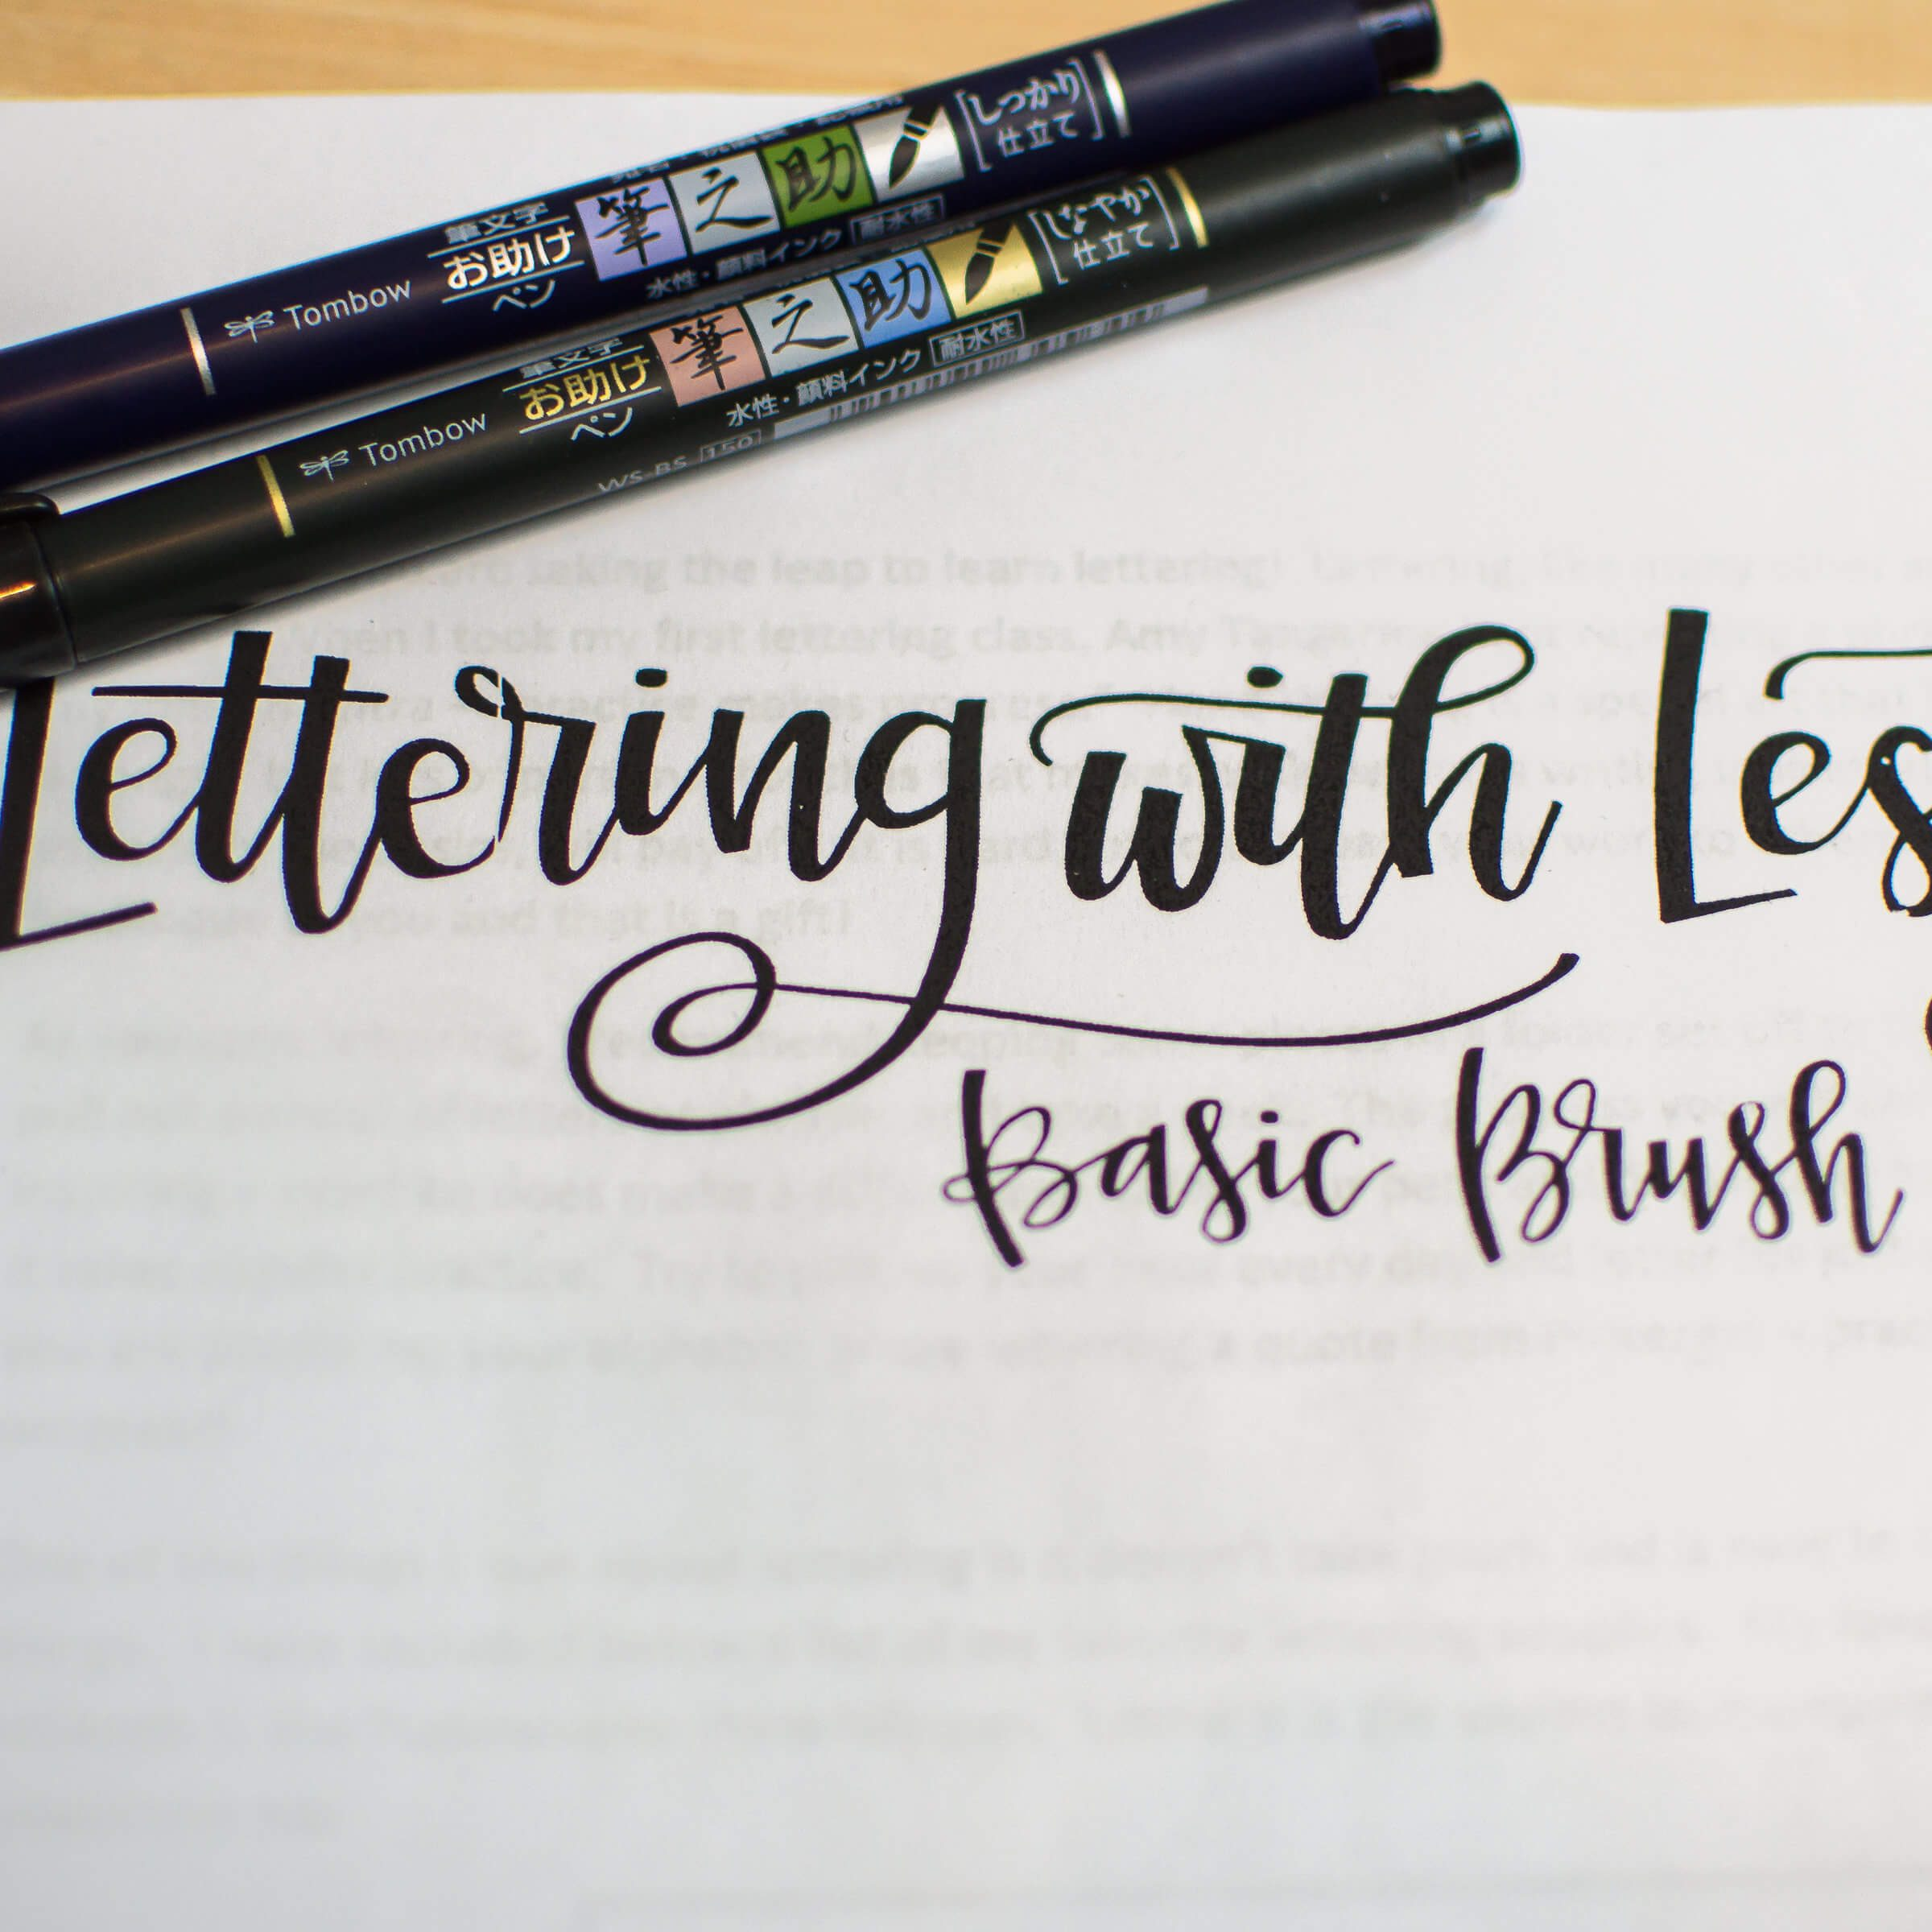 Lettering with Lesley Packet basic brush